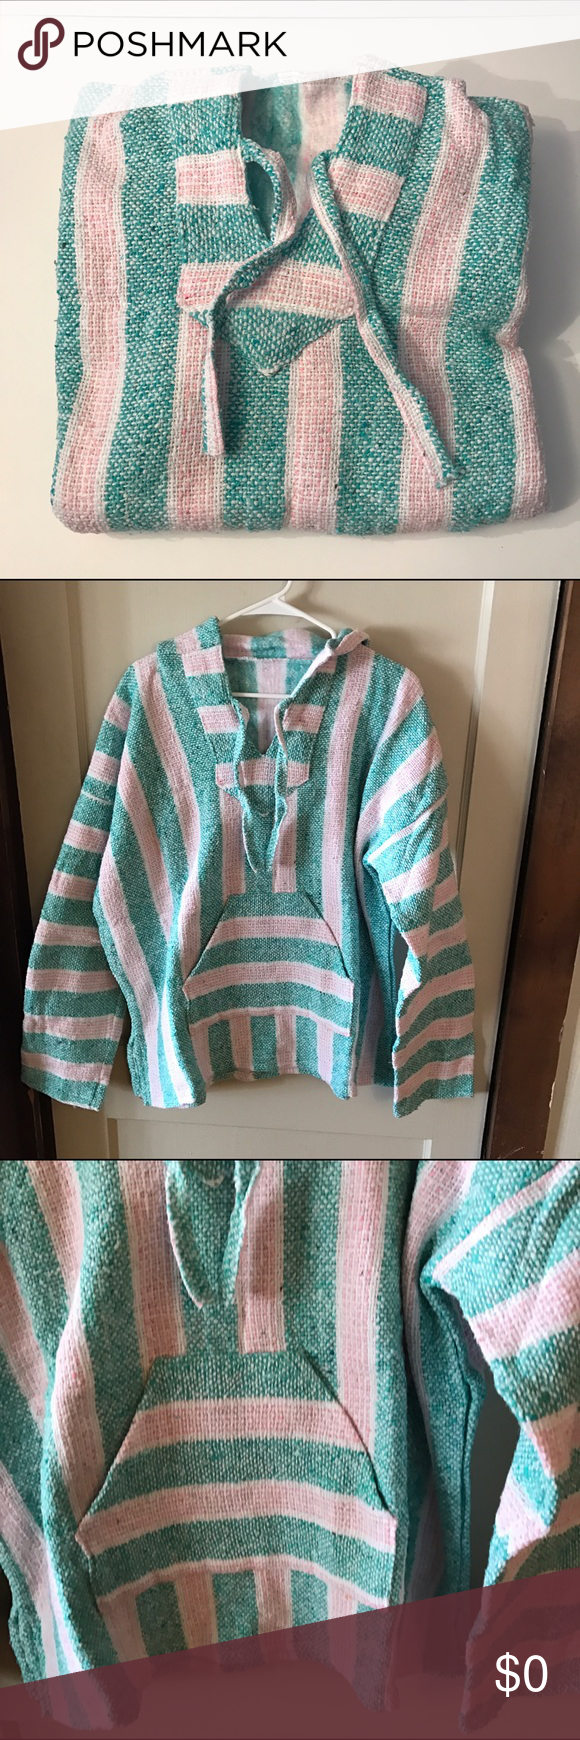 """NWOT!!! Colorful Baja Hoodie NWOT!!  Colorful Baja Hoodie with front pouch Pocket. Underarm to underarm is approximately 27"""". Length approximately 28-1/2"""". Junior/Contemporary fit. ❌No trades Three Bird Nest Tops Sweatshirts & Hoodies"""